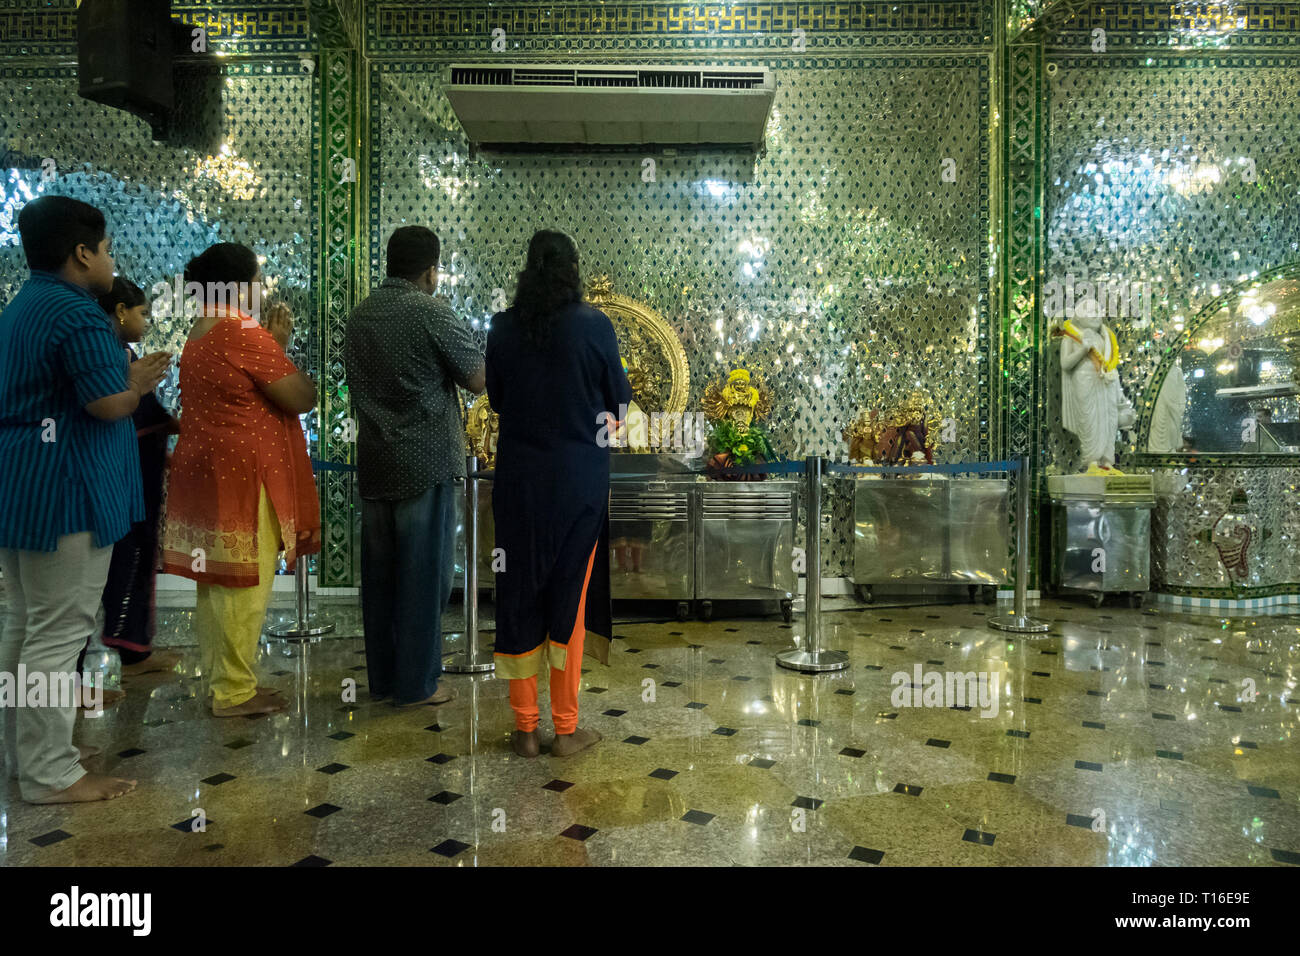 The unique Arulmigu Sri Rajakaliamman Glass Temple in Johor Bahru, Malaysia. The interior is completely covered in glass tiles. Interior and praying. - Stock Image